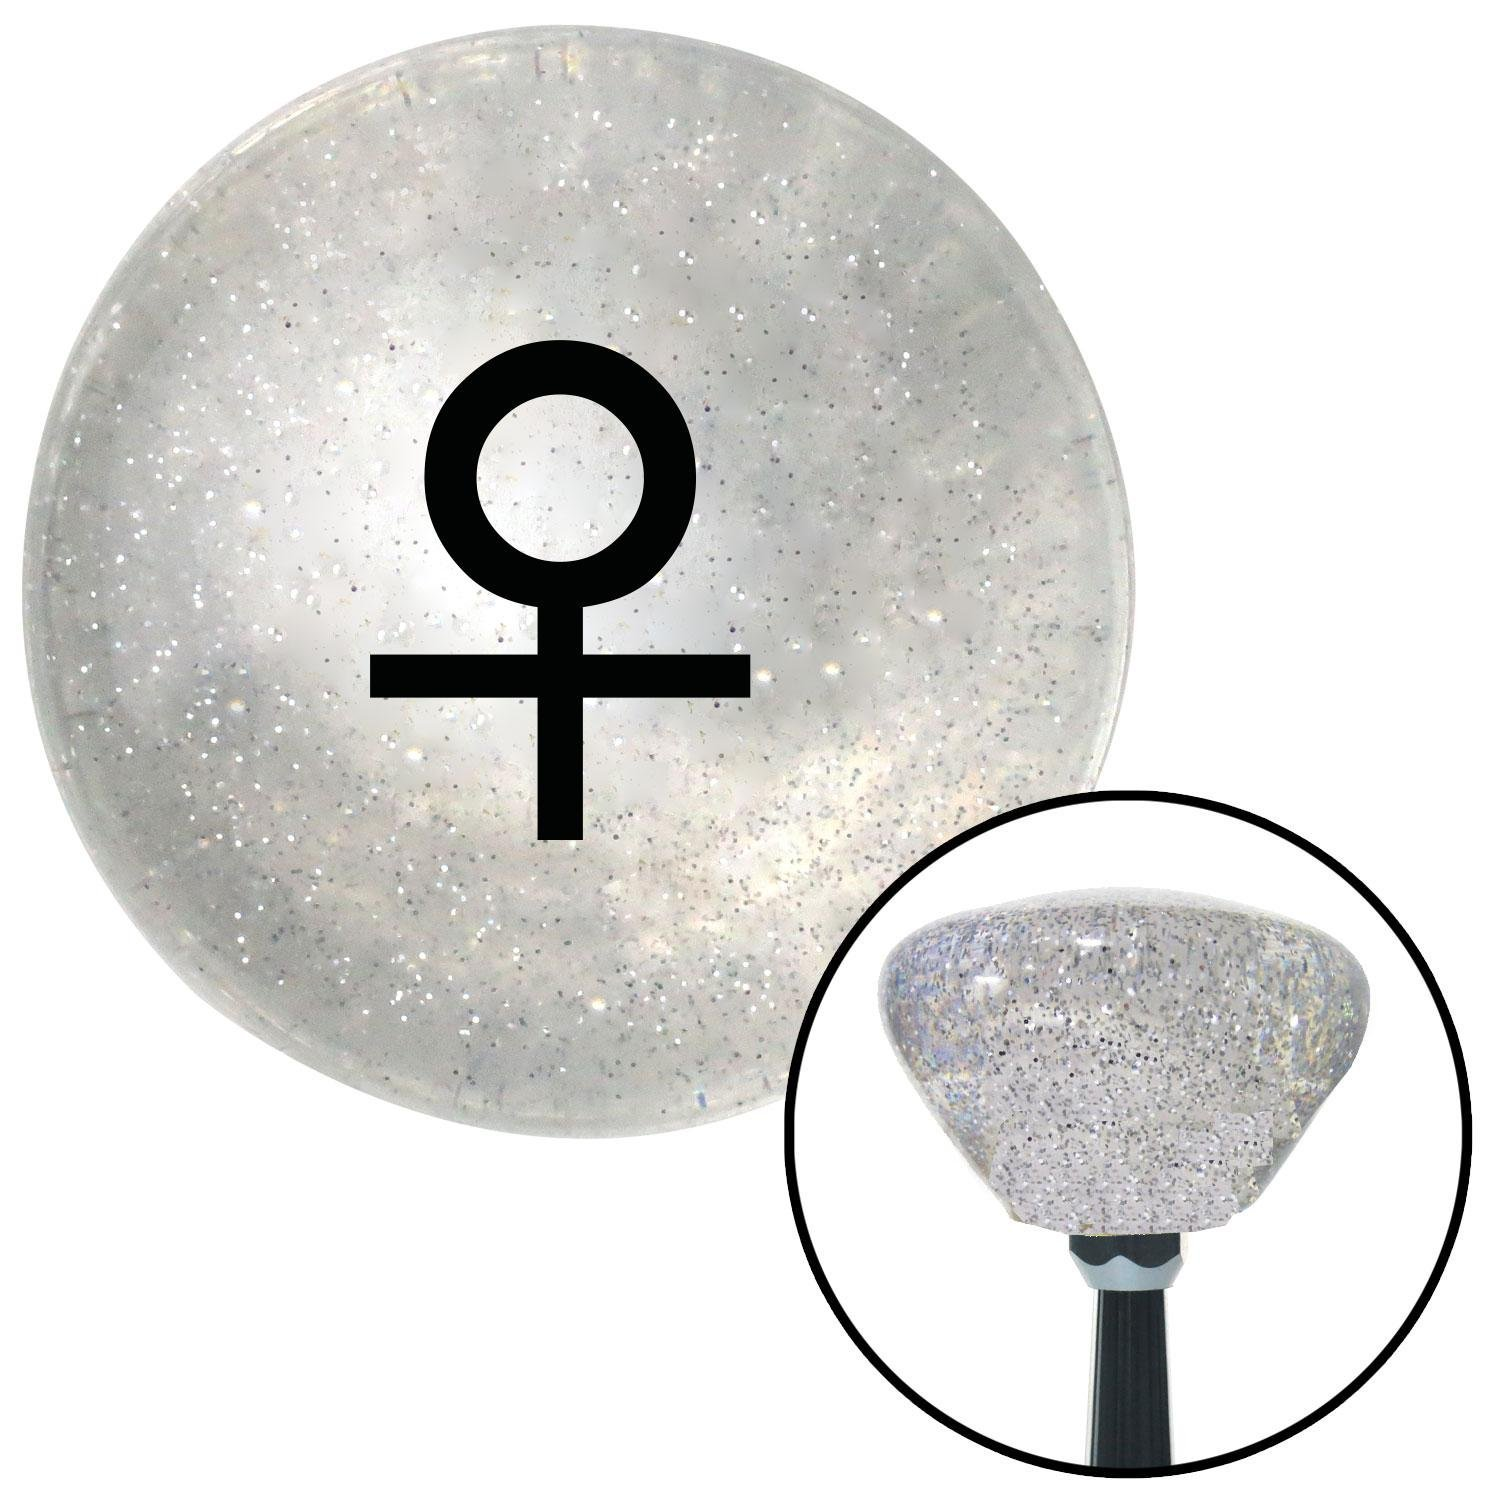 White Jet Formation American Shifter 256733 Orange Flame Metal Flake Shift Knob with M16 x 1.5 Insert